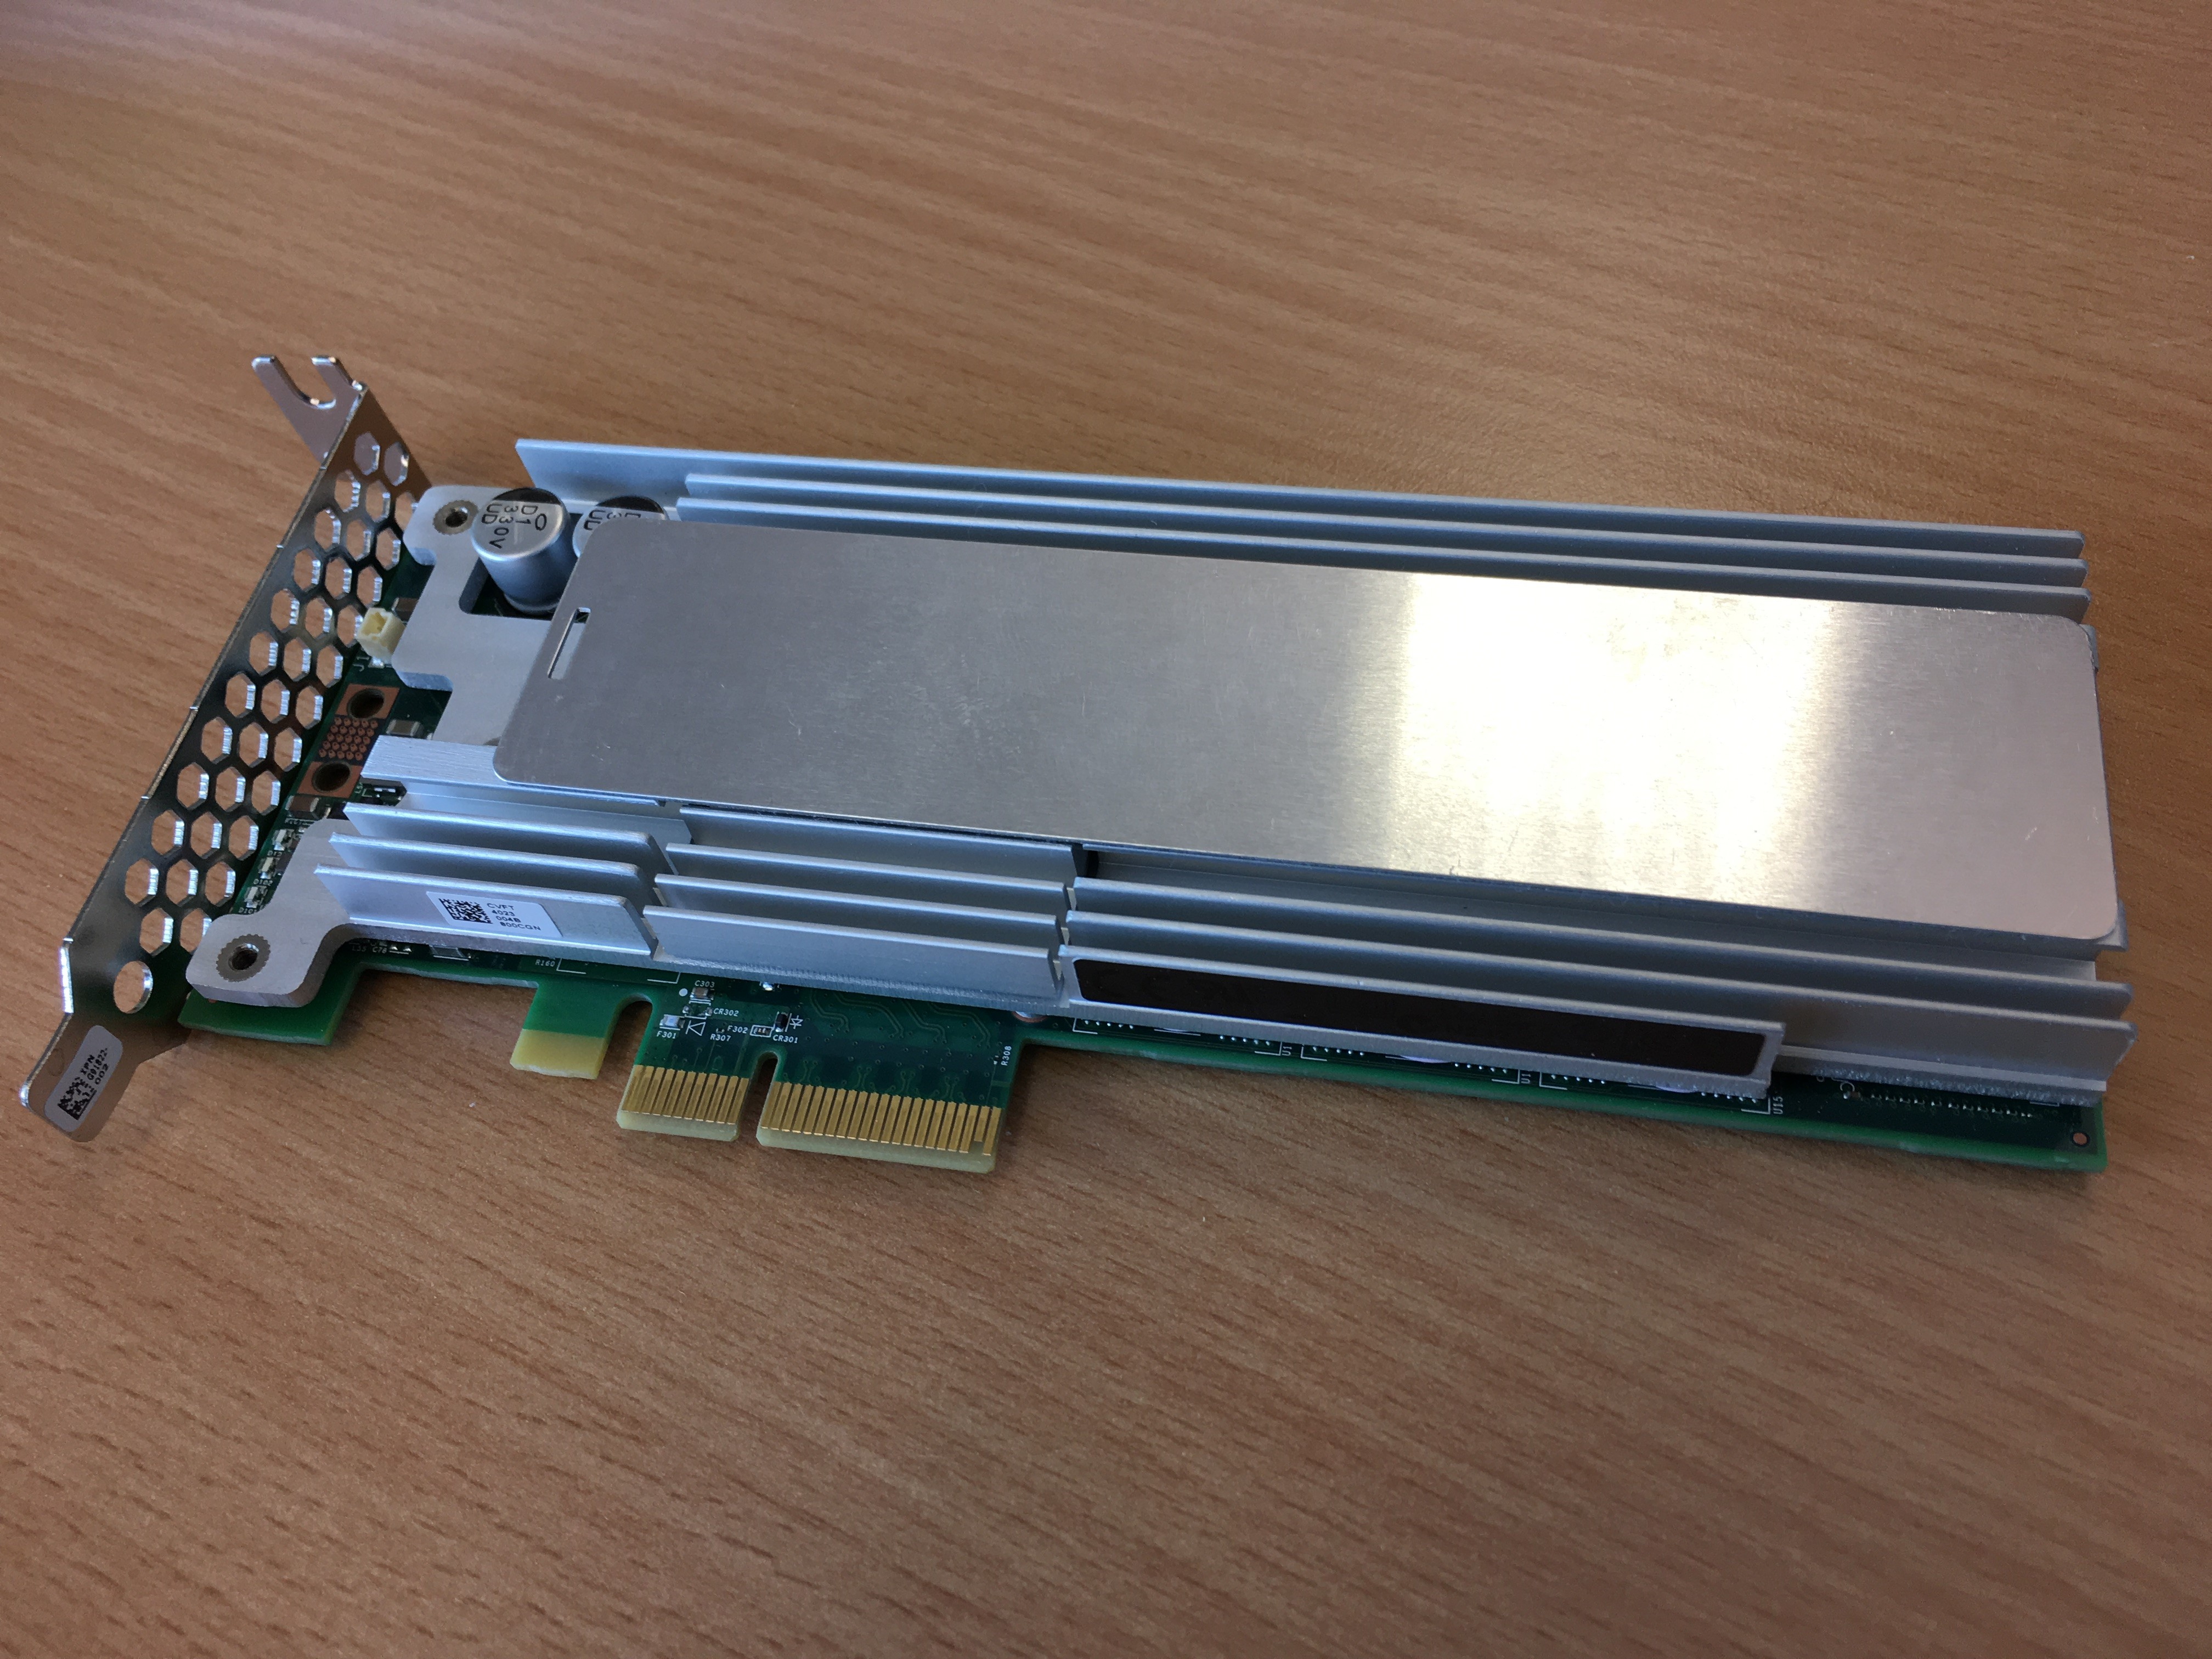 Fig1. Intel P3700 PCI-Express x4 NVMe device